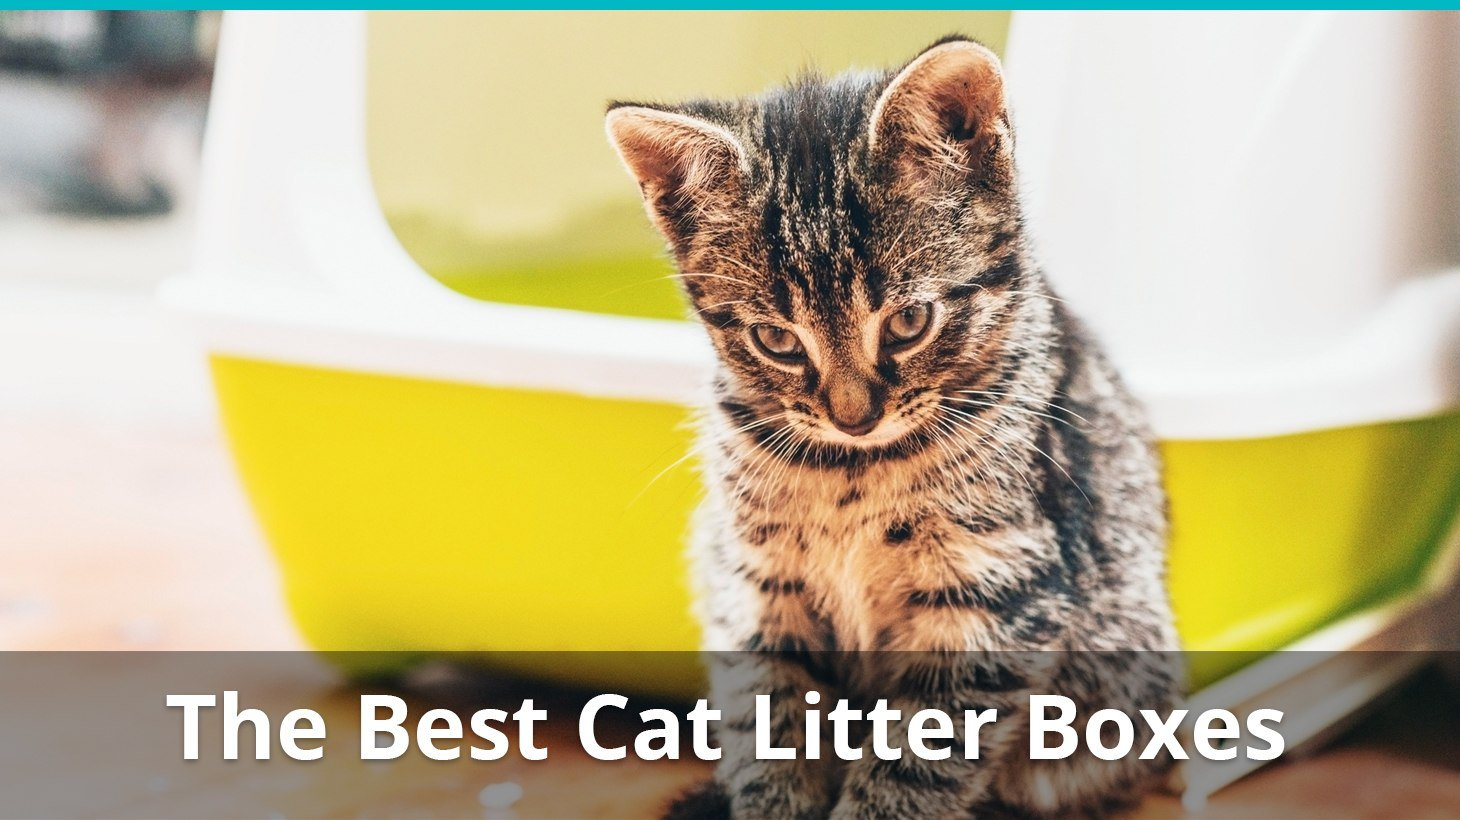 Why Do Cats Like Kitty Litter